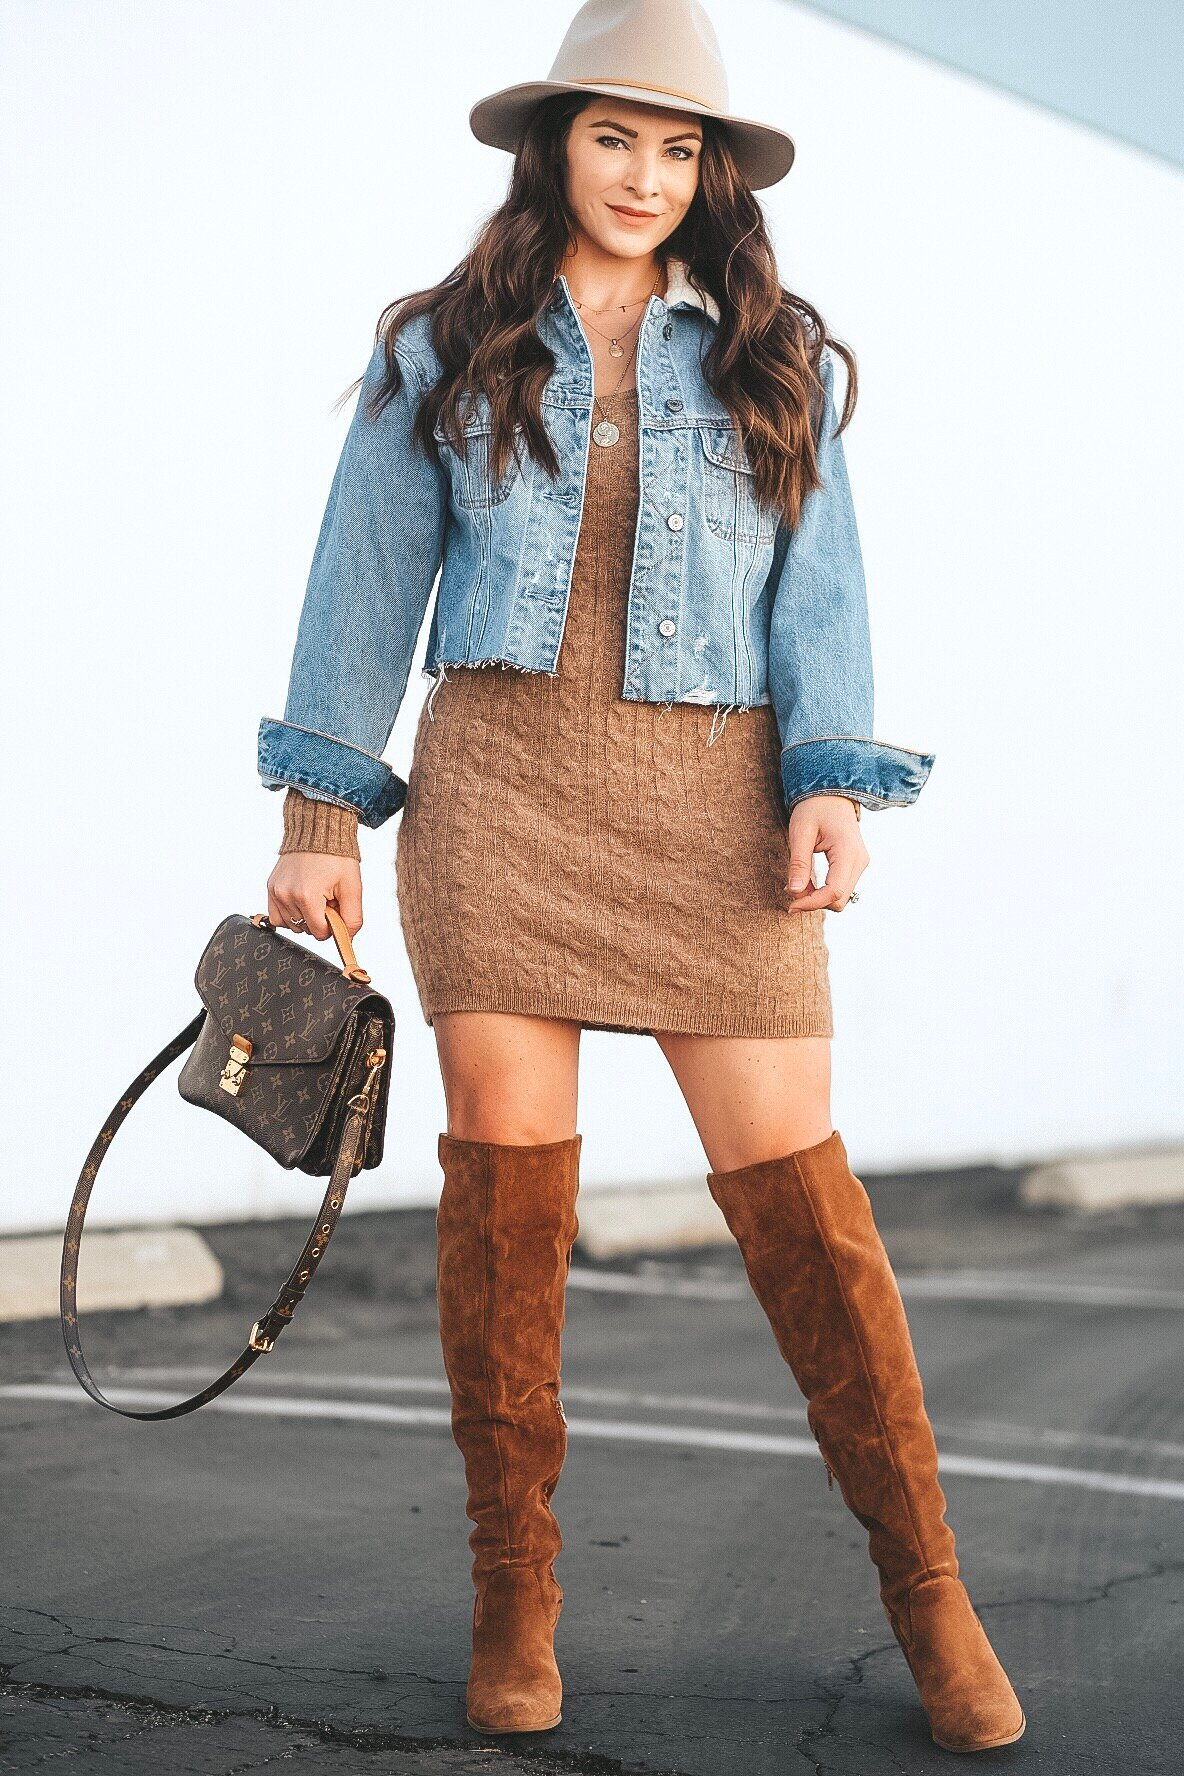 Affordable sweater dresses for fall.  Tan sweater dress with brown boots, cropped denim jacket, layered gold necklaces, and a Louis Vuitton Metis Pochette.